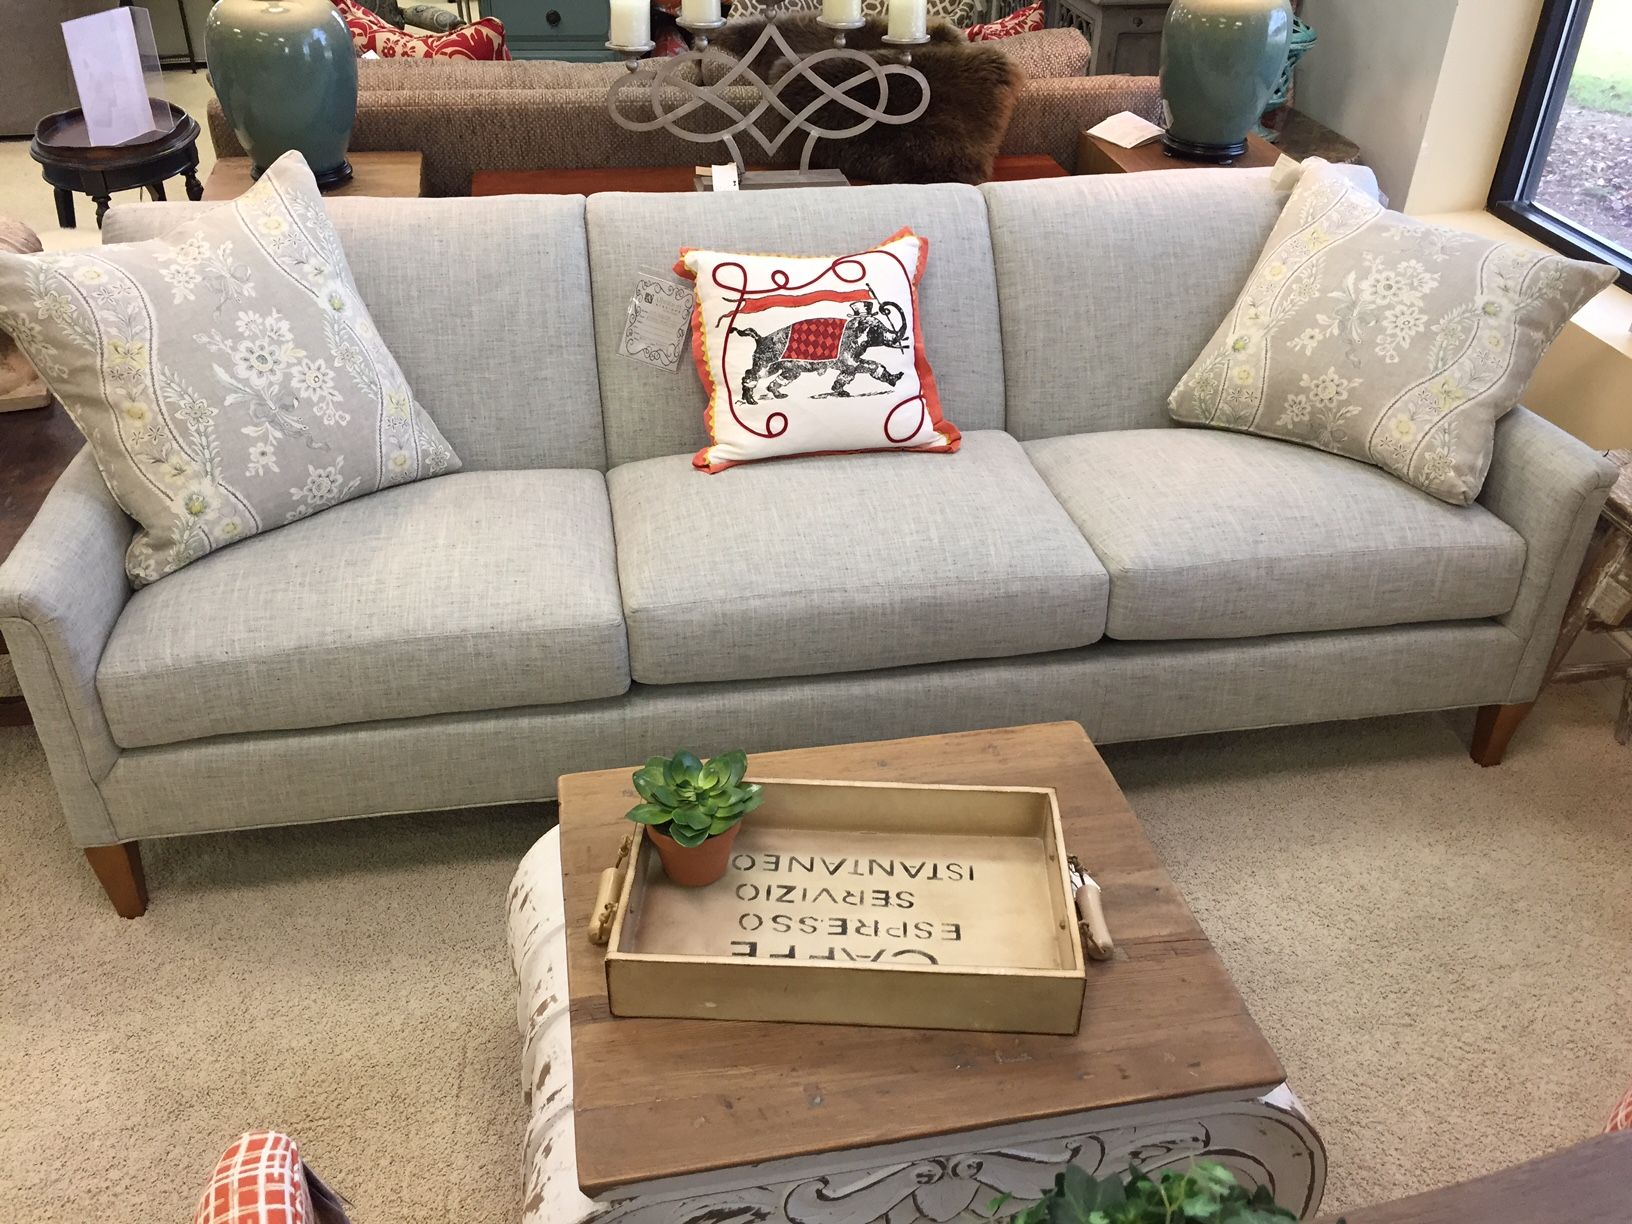 CR Laine Digby Long Sofa Albritton Showroom